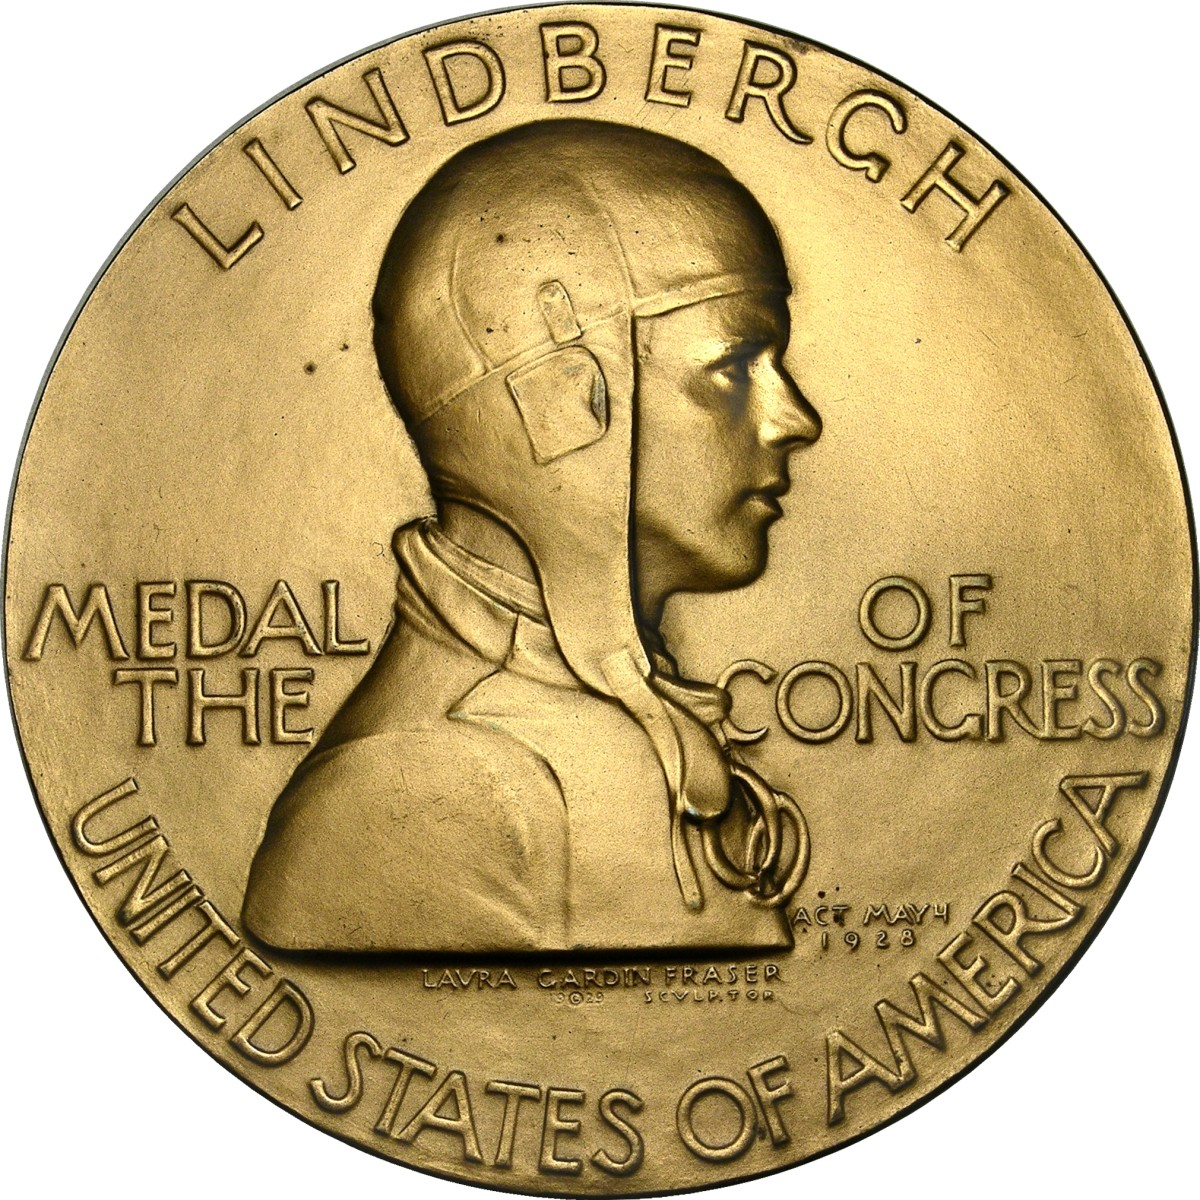 Gold Medal Awarded by Congress to Charles Lindbergh